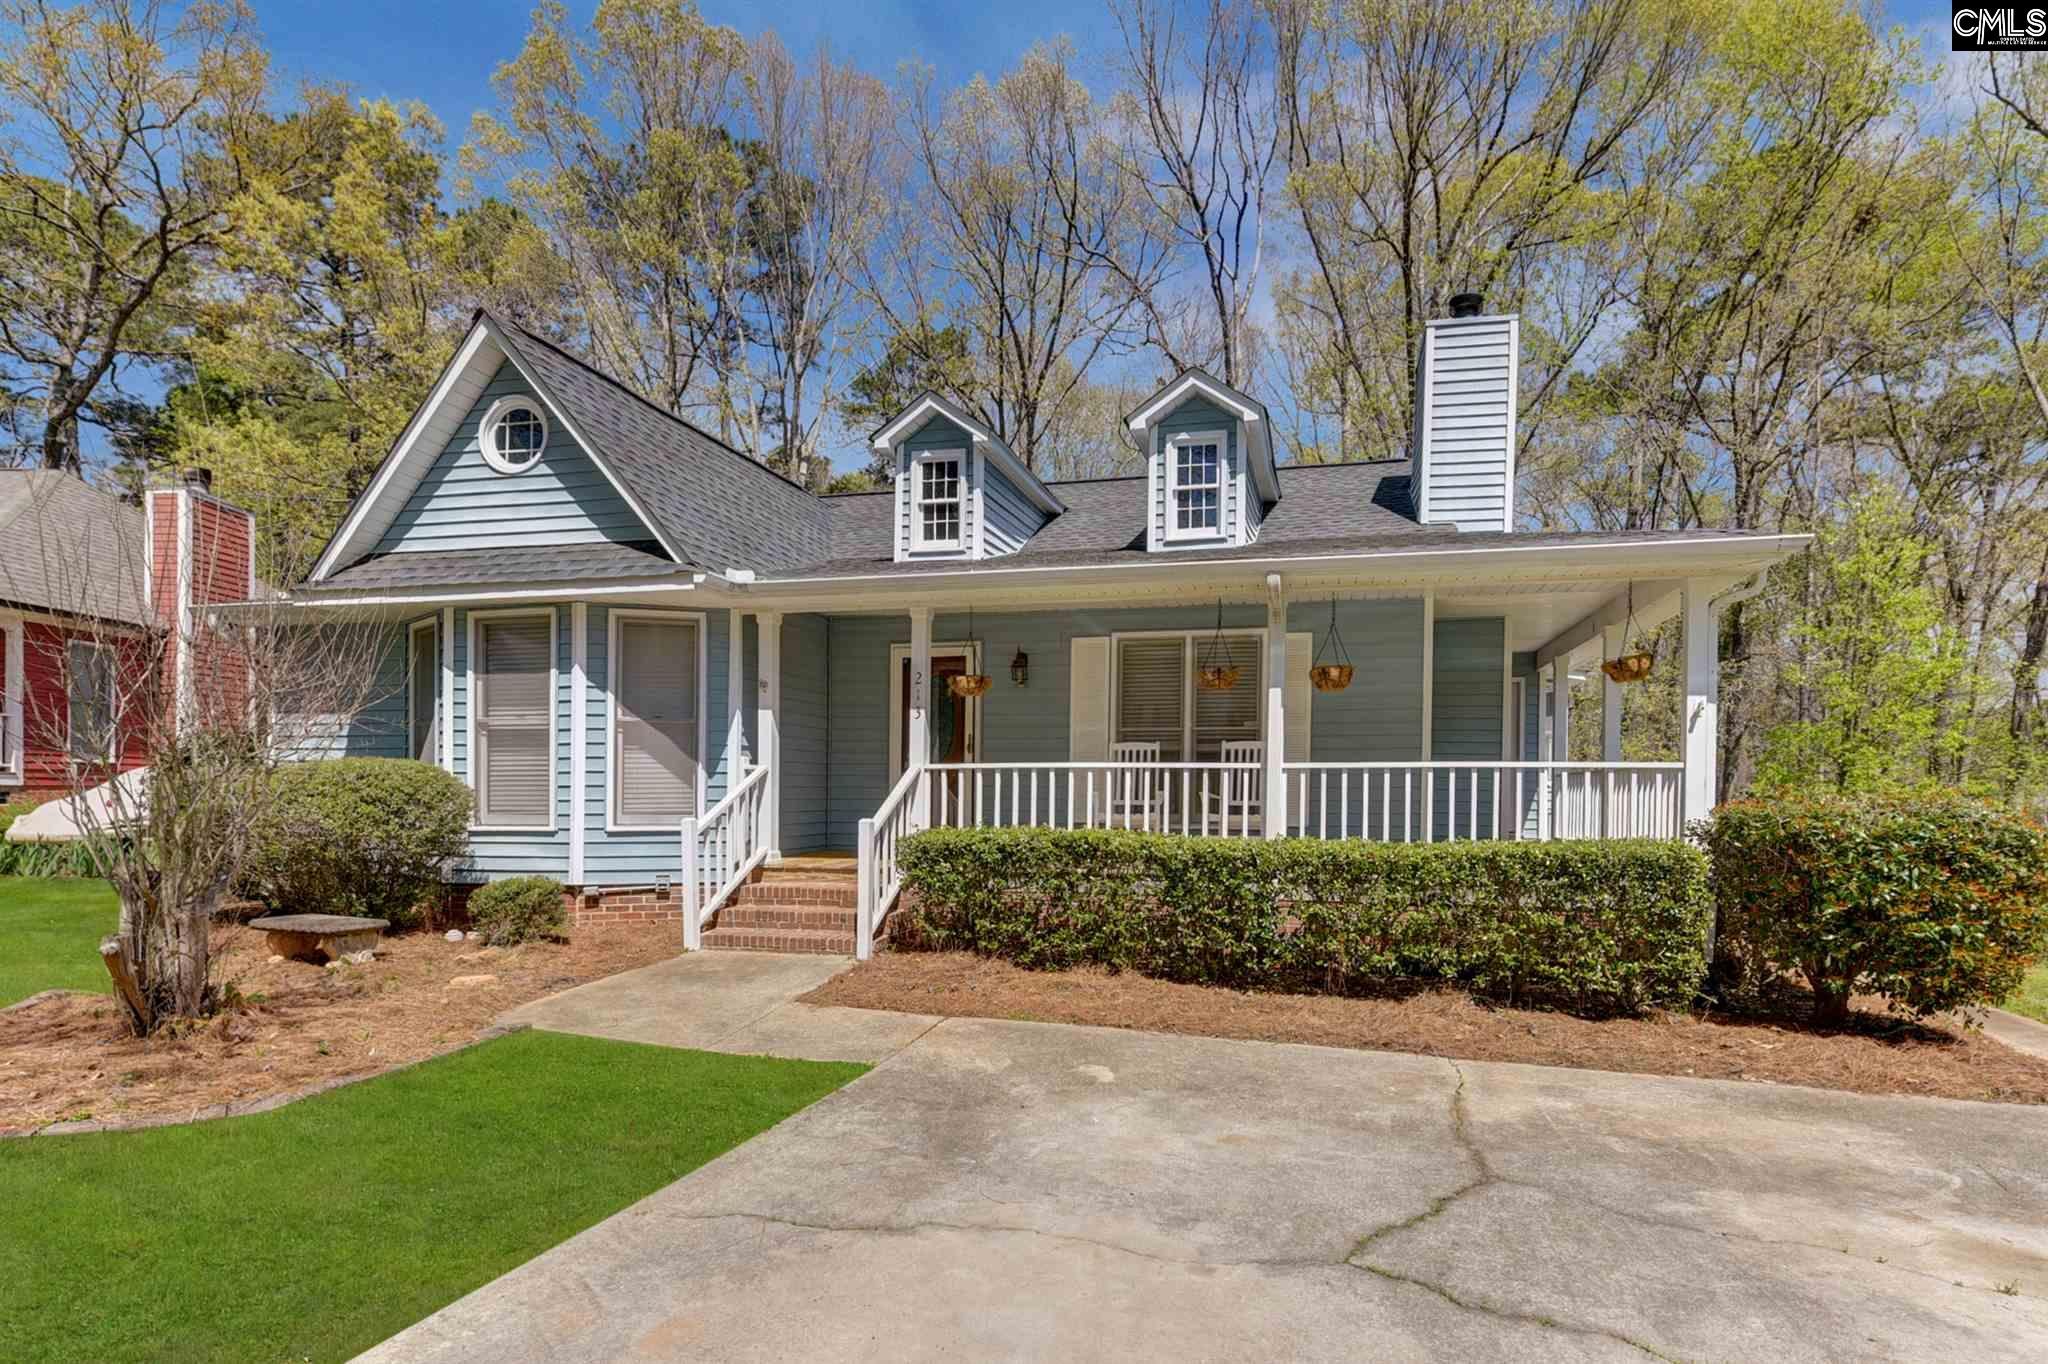 213 Saddlebrooke Lexington, SC 29072